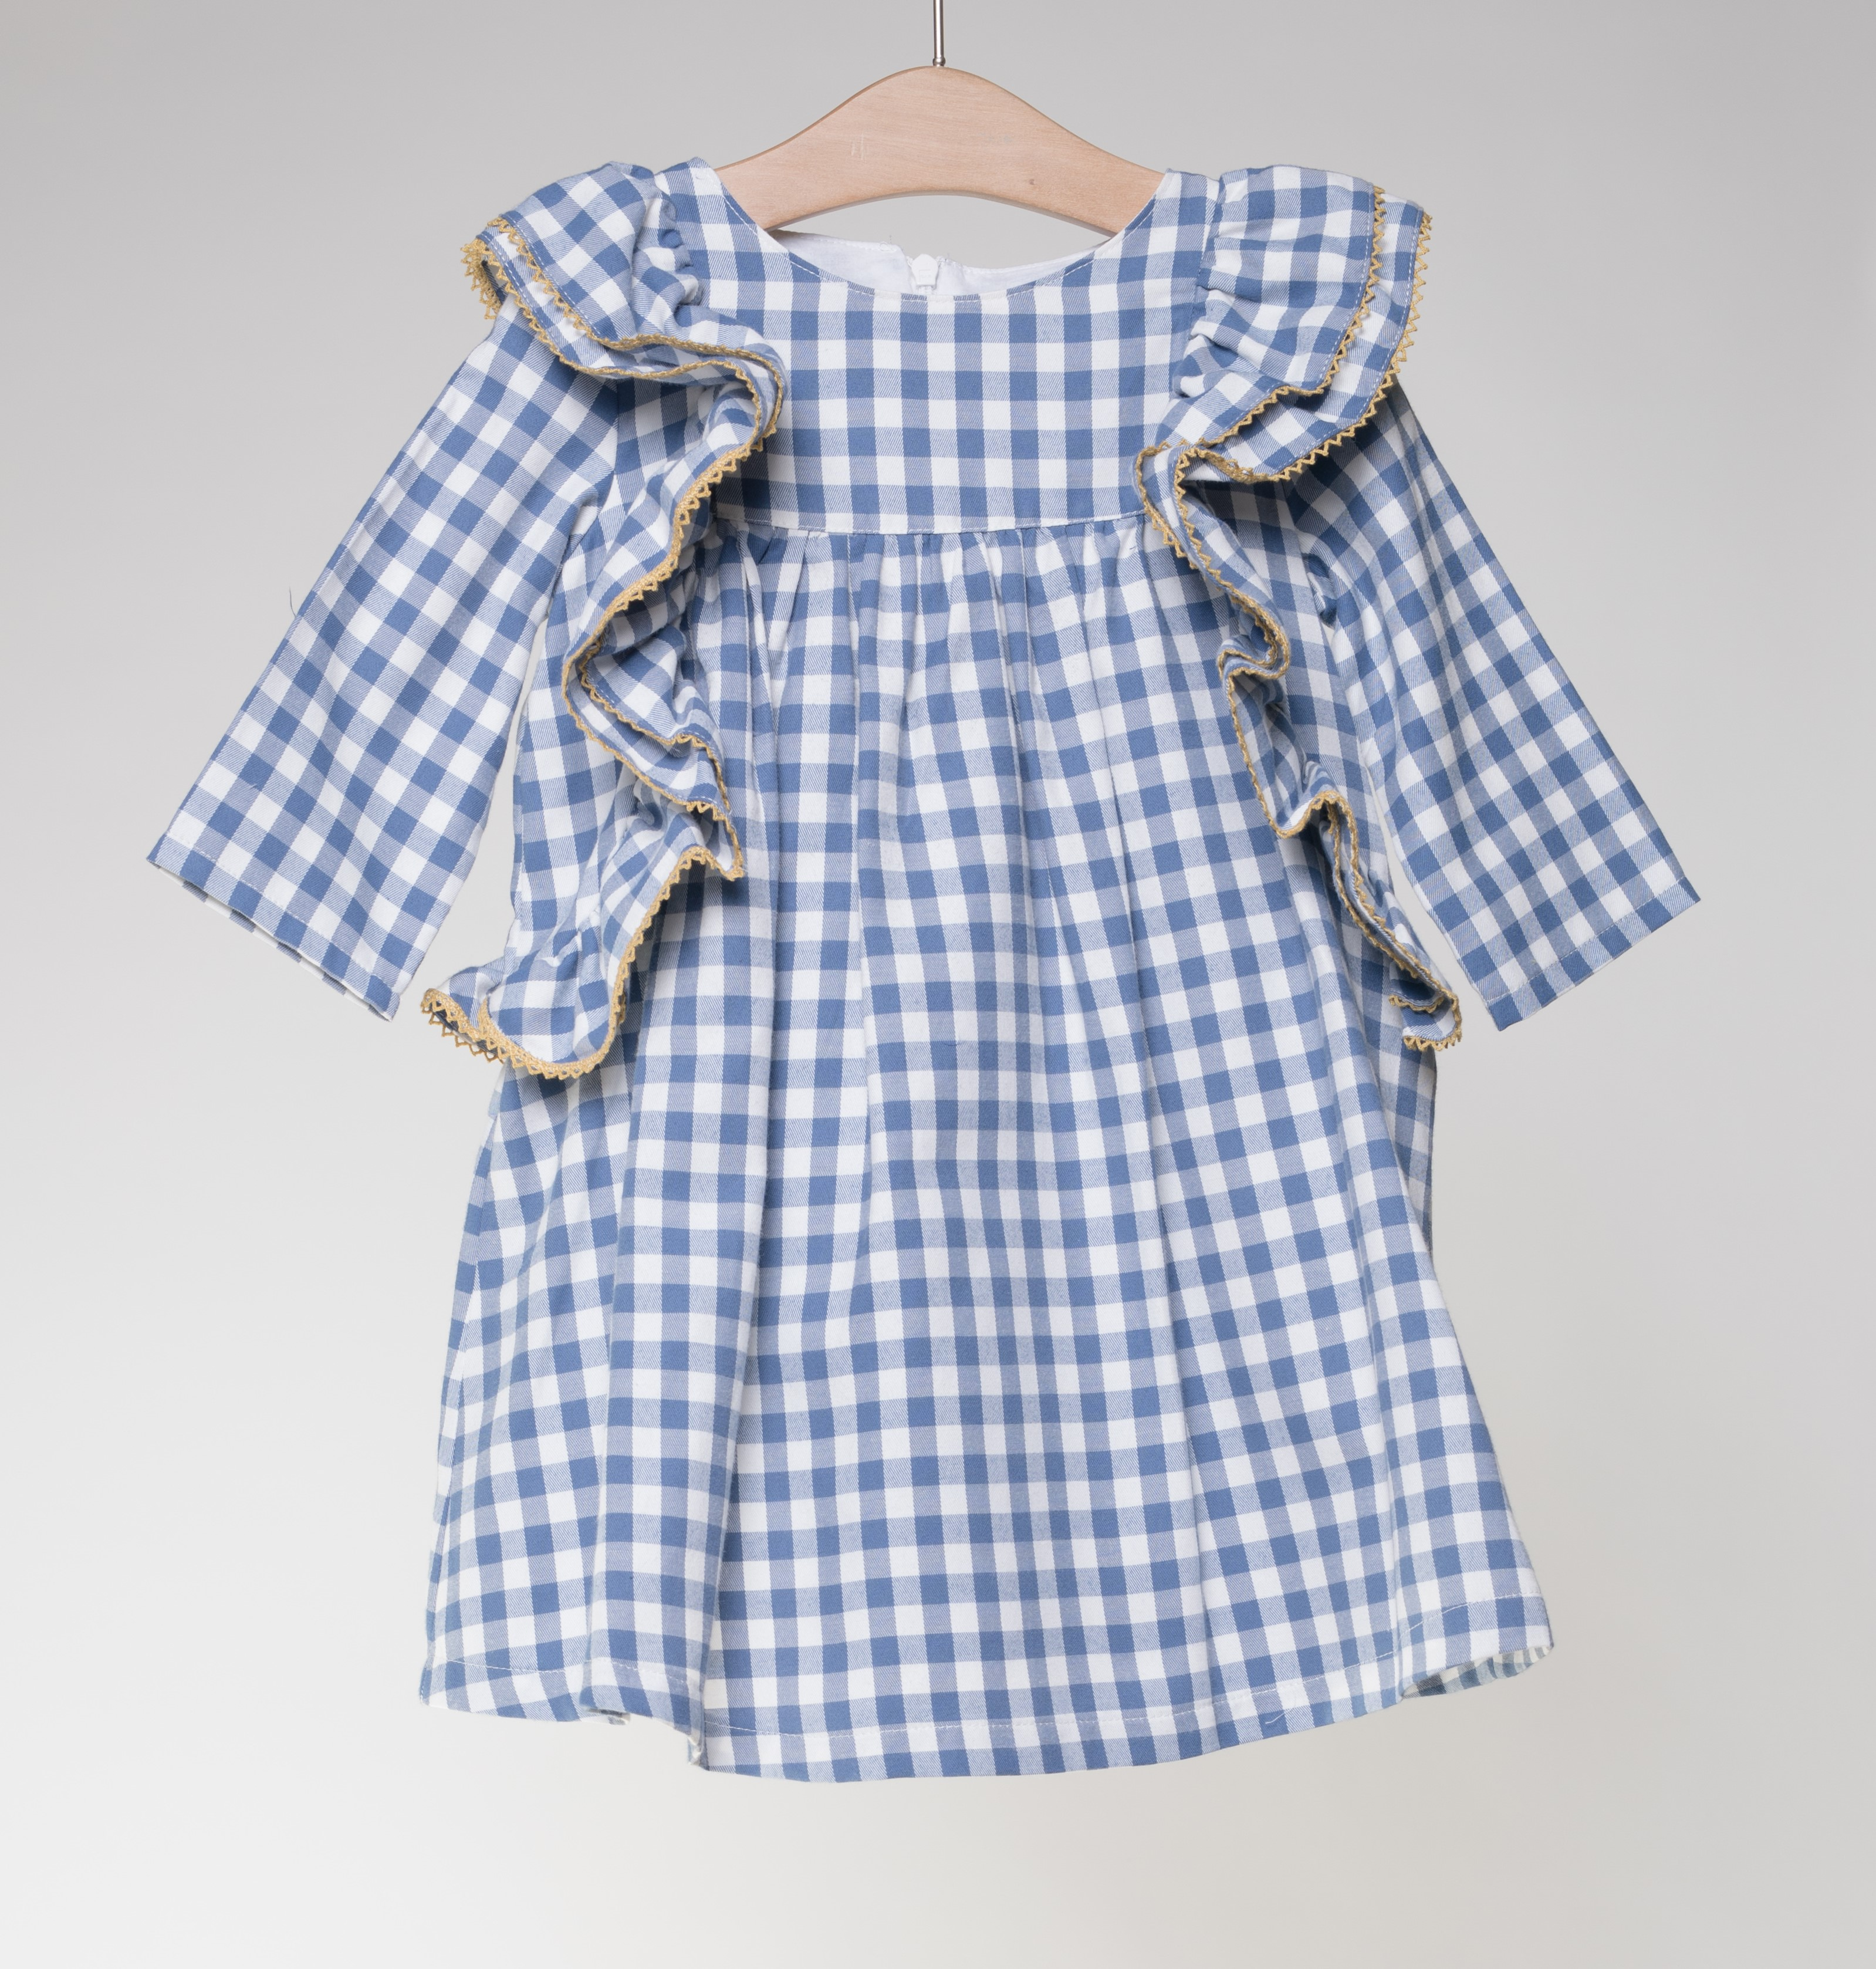 4941ed8738d5 FINA EJERIQUE GIRLS INDIGO BLUE   WHITE   YELLOW CHECKED FRILLED ...